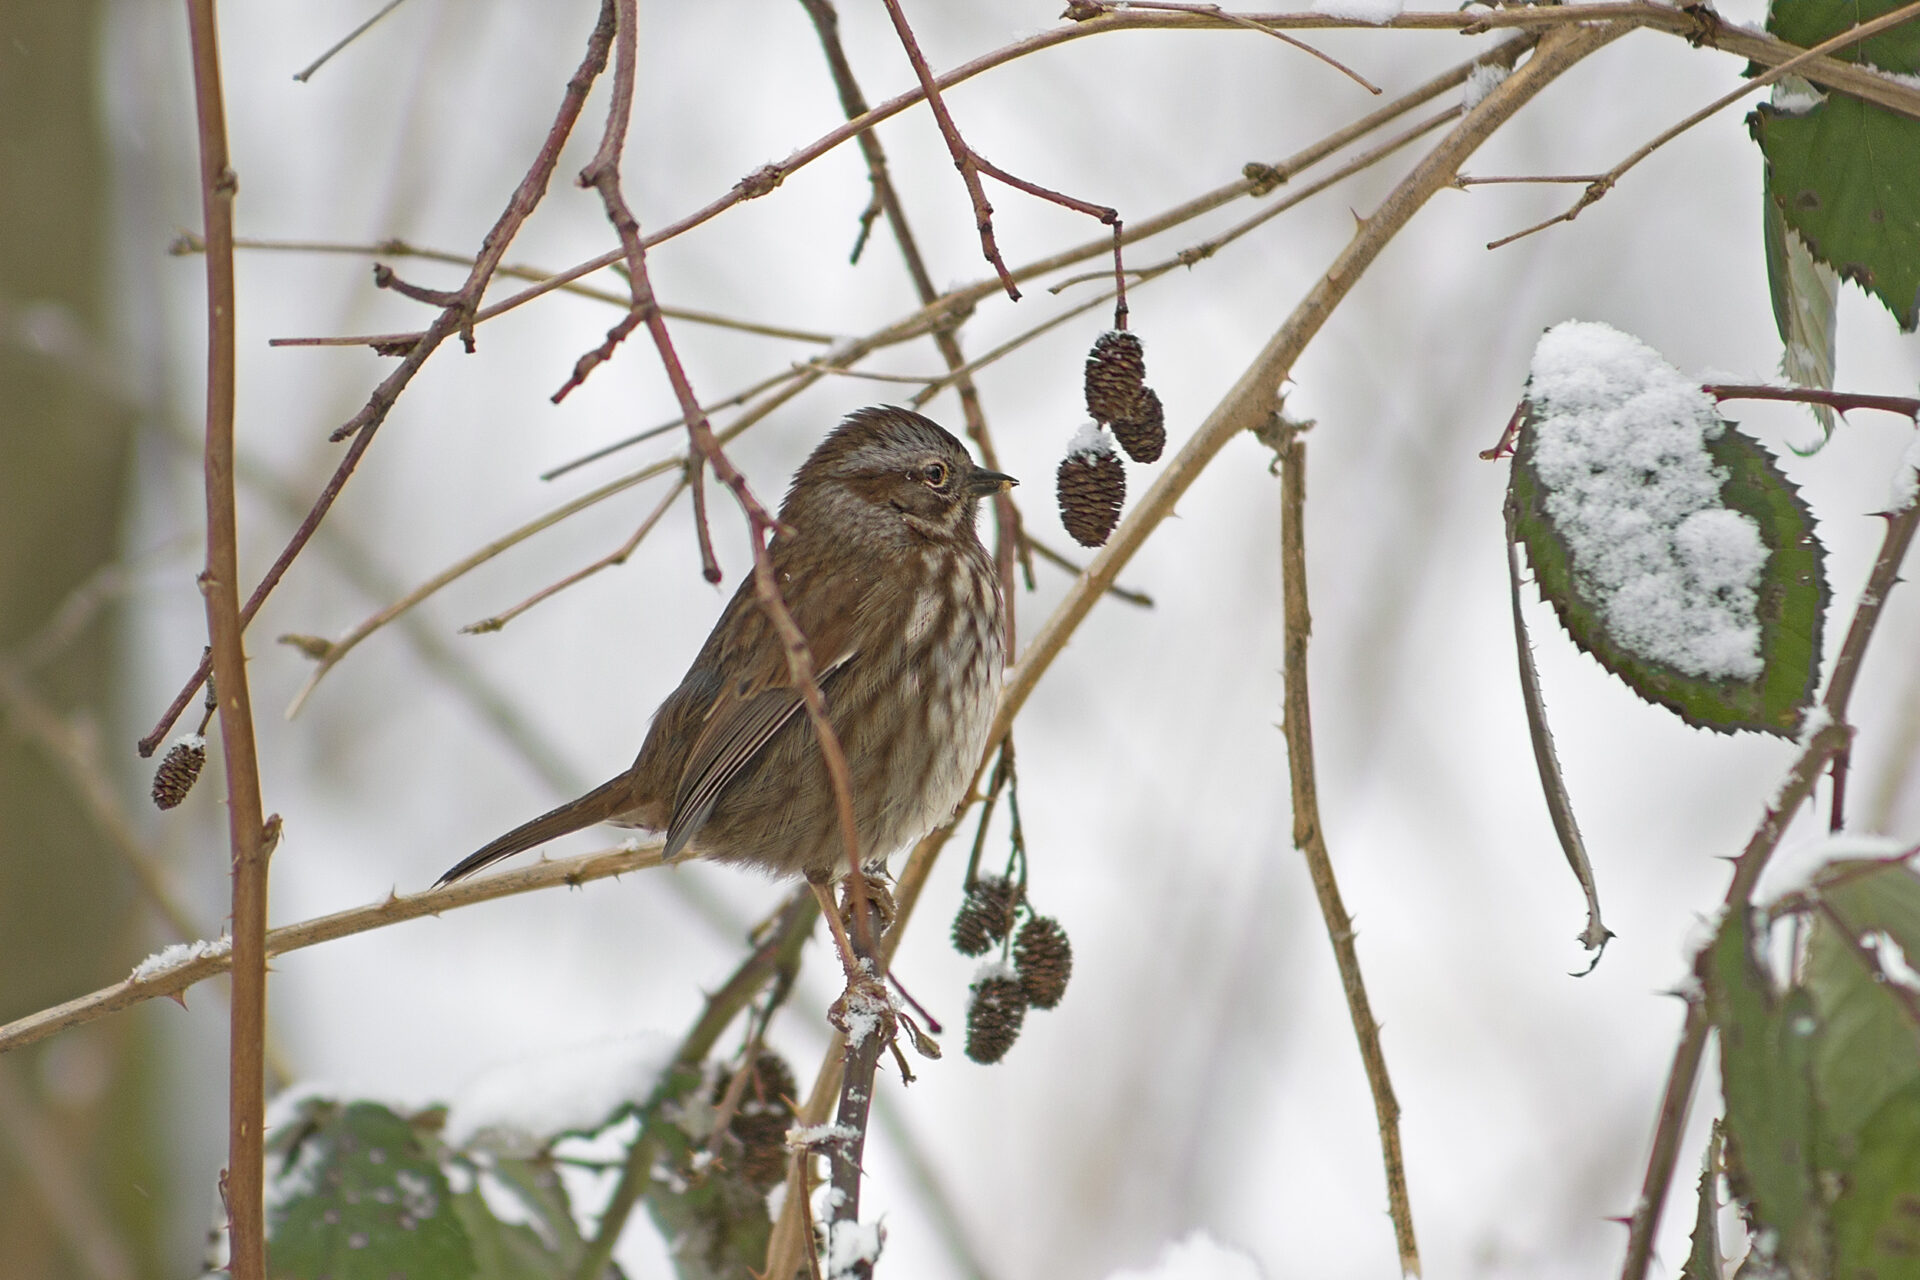 Song Sparrow in the Watershed, February 13, 2019